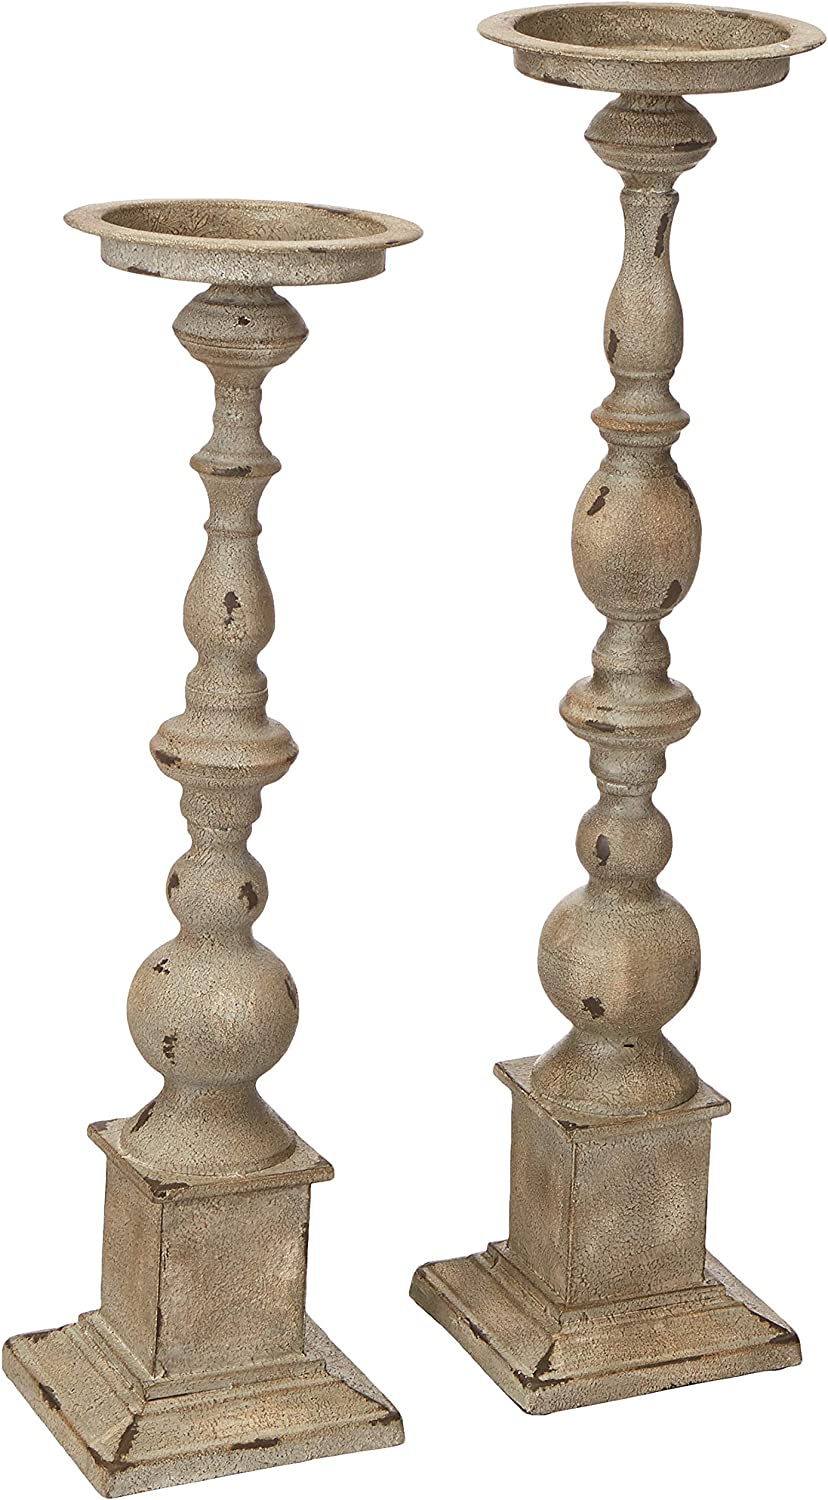 Imax 74182-2 Hamilton Candleholders – Set of 2 Candle Stands, Handcrafted Candle Sticks, Vintage Inspired, Wrought Iron Candle Holders. Home Decor: Home & Kitchen